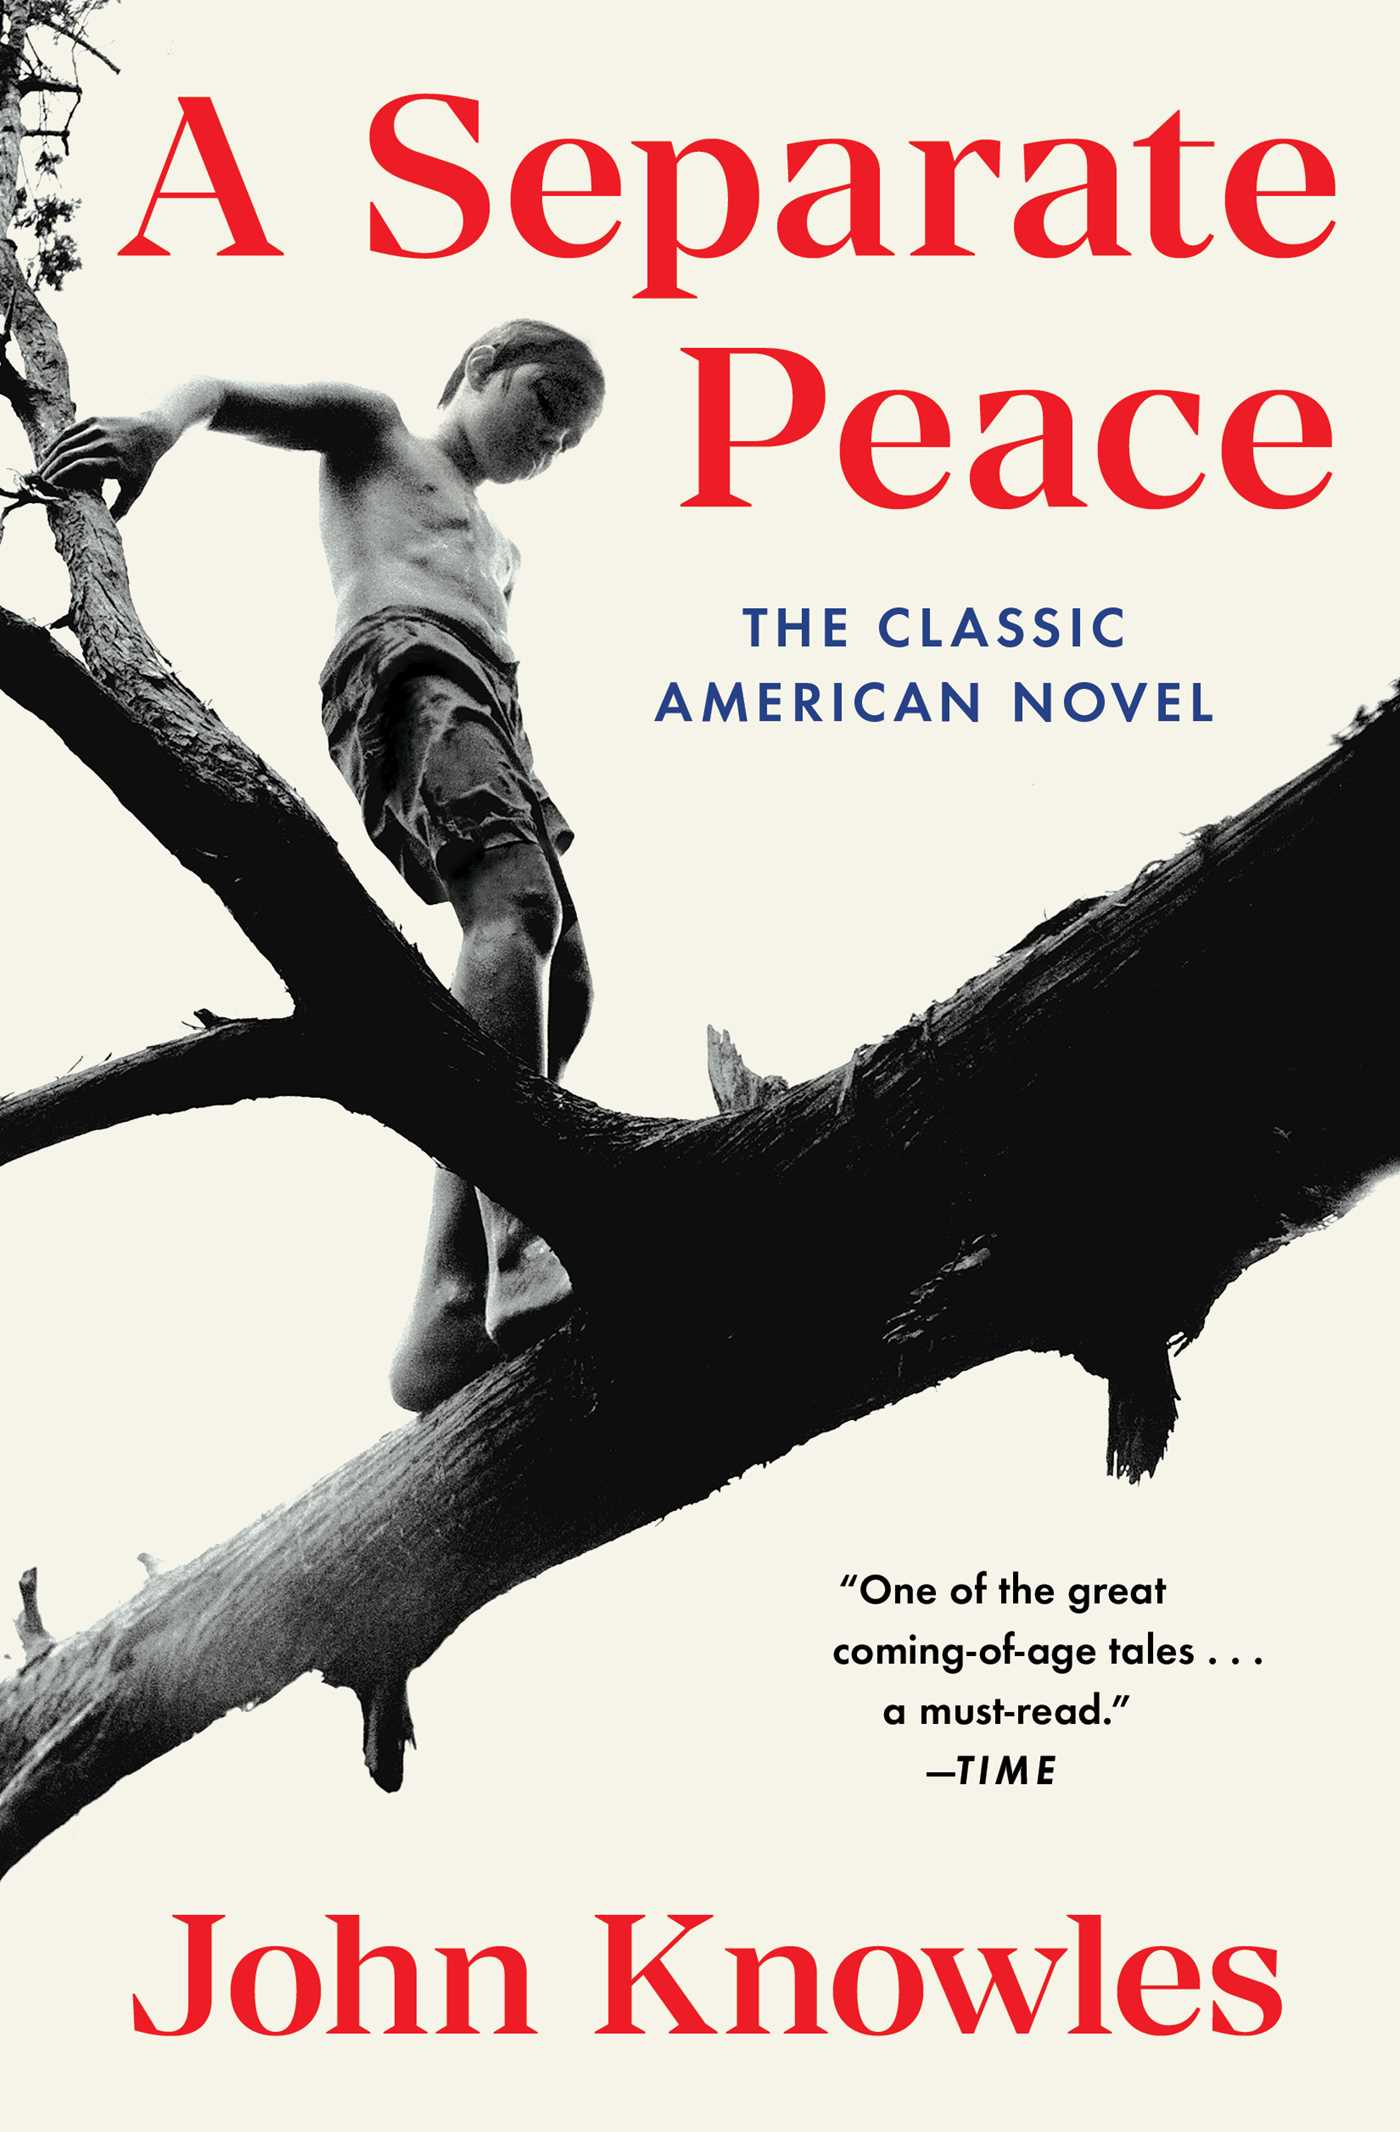 an essay on the novel a separate peace by john knowles